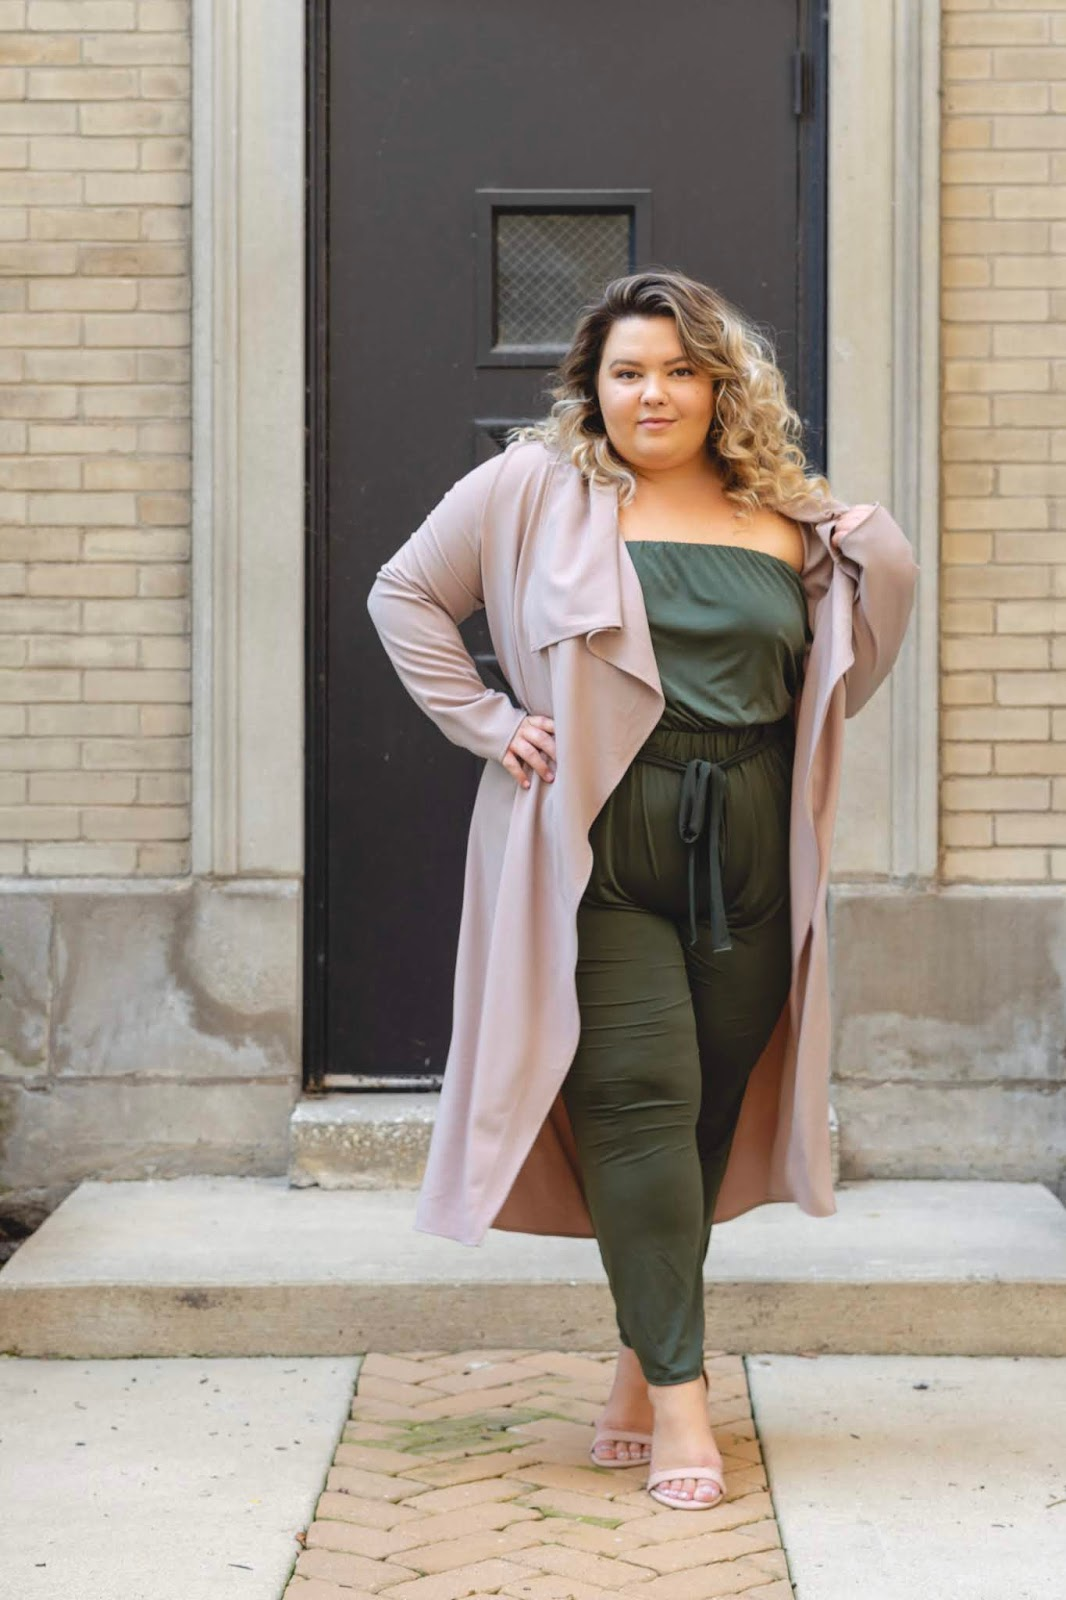 Chicago fashion blogger, Chicago plus size fashion blogger, natalie Craig, natalie in the city, plus size fashion, Chicago fashion, plus size fashion blogger, eff your beauty standards, fatshion, skorch magazine, Chicago model, plus size model, plus size petite, affordable plus size clothing, embrace your curves, plus model magazine,  petite plus size, fashion nova, fashion nova curve, jumpsuit, plus size jumpsuit, flattering jumpsuits, plus size trench duster coat